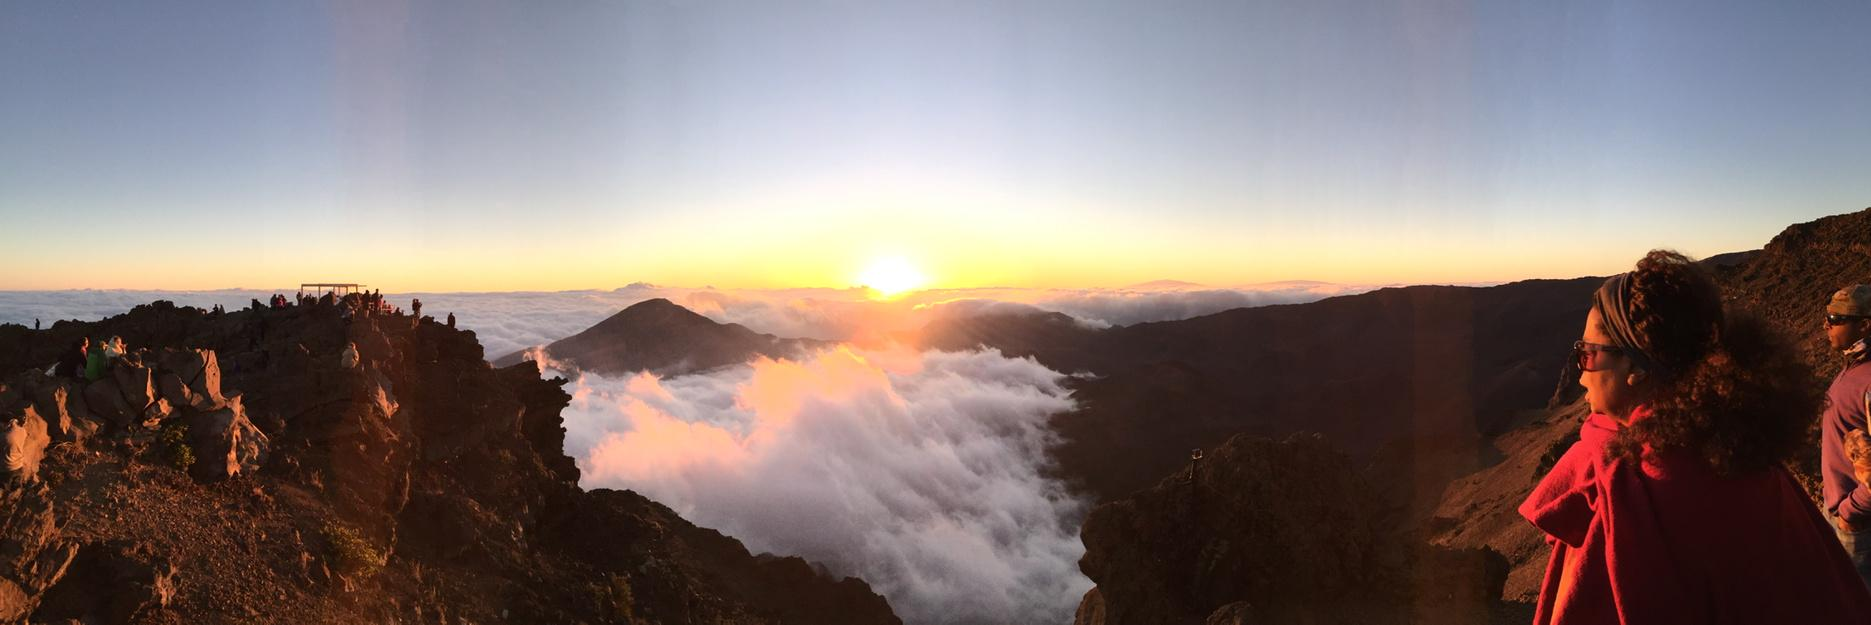 Sunrise over Haleakala good mornTing! http://t.co/1H7SrgowXe